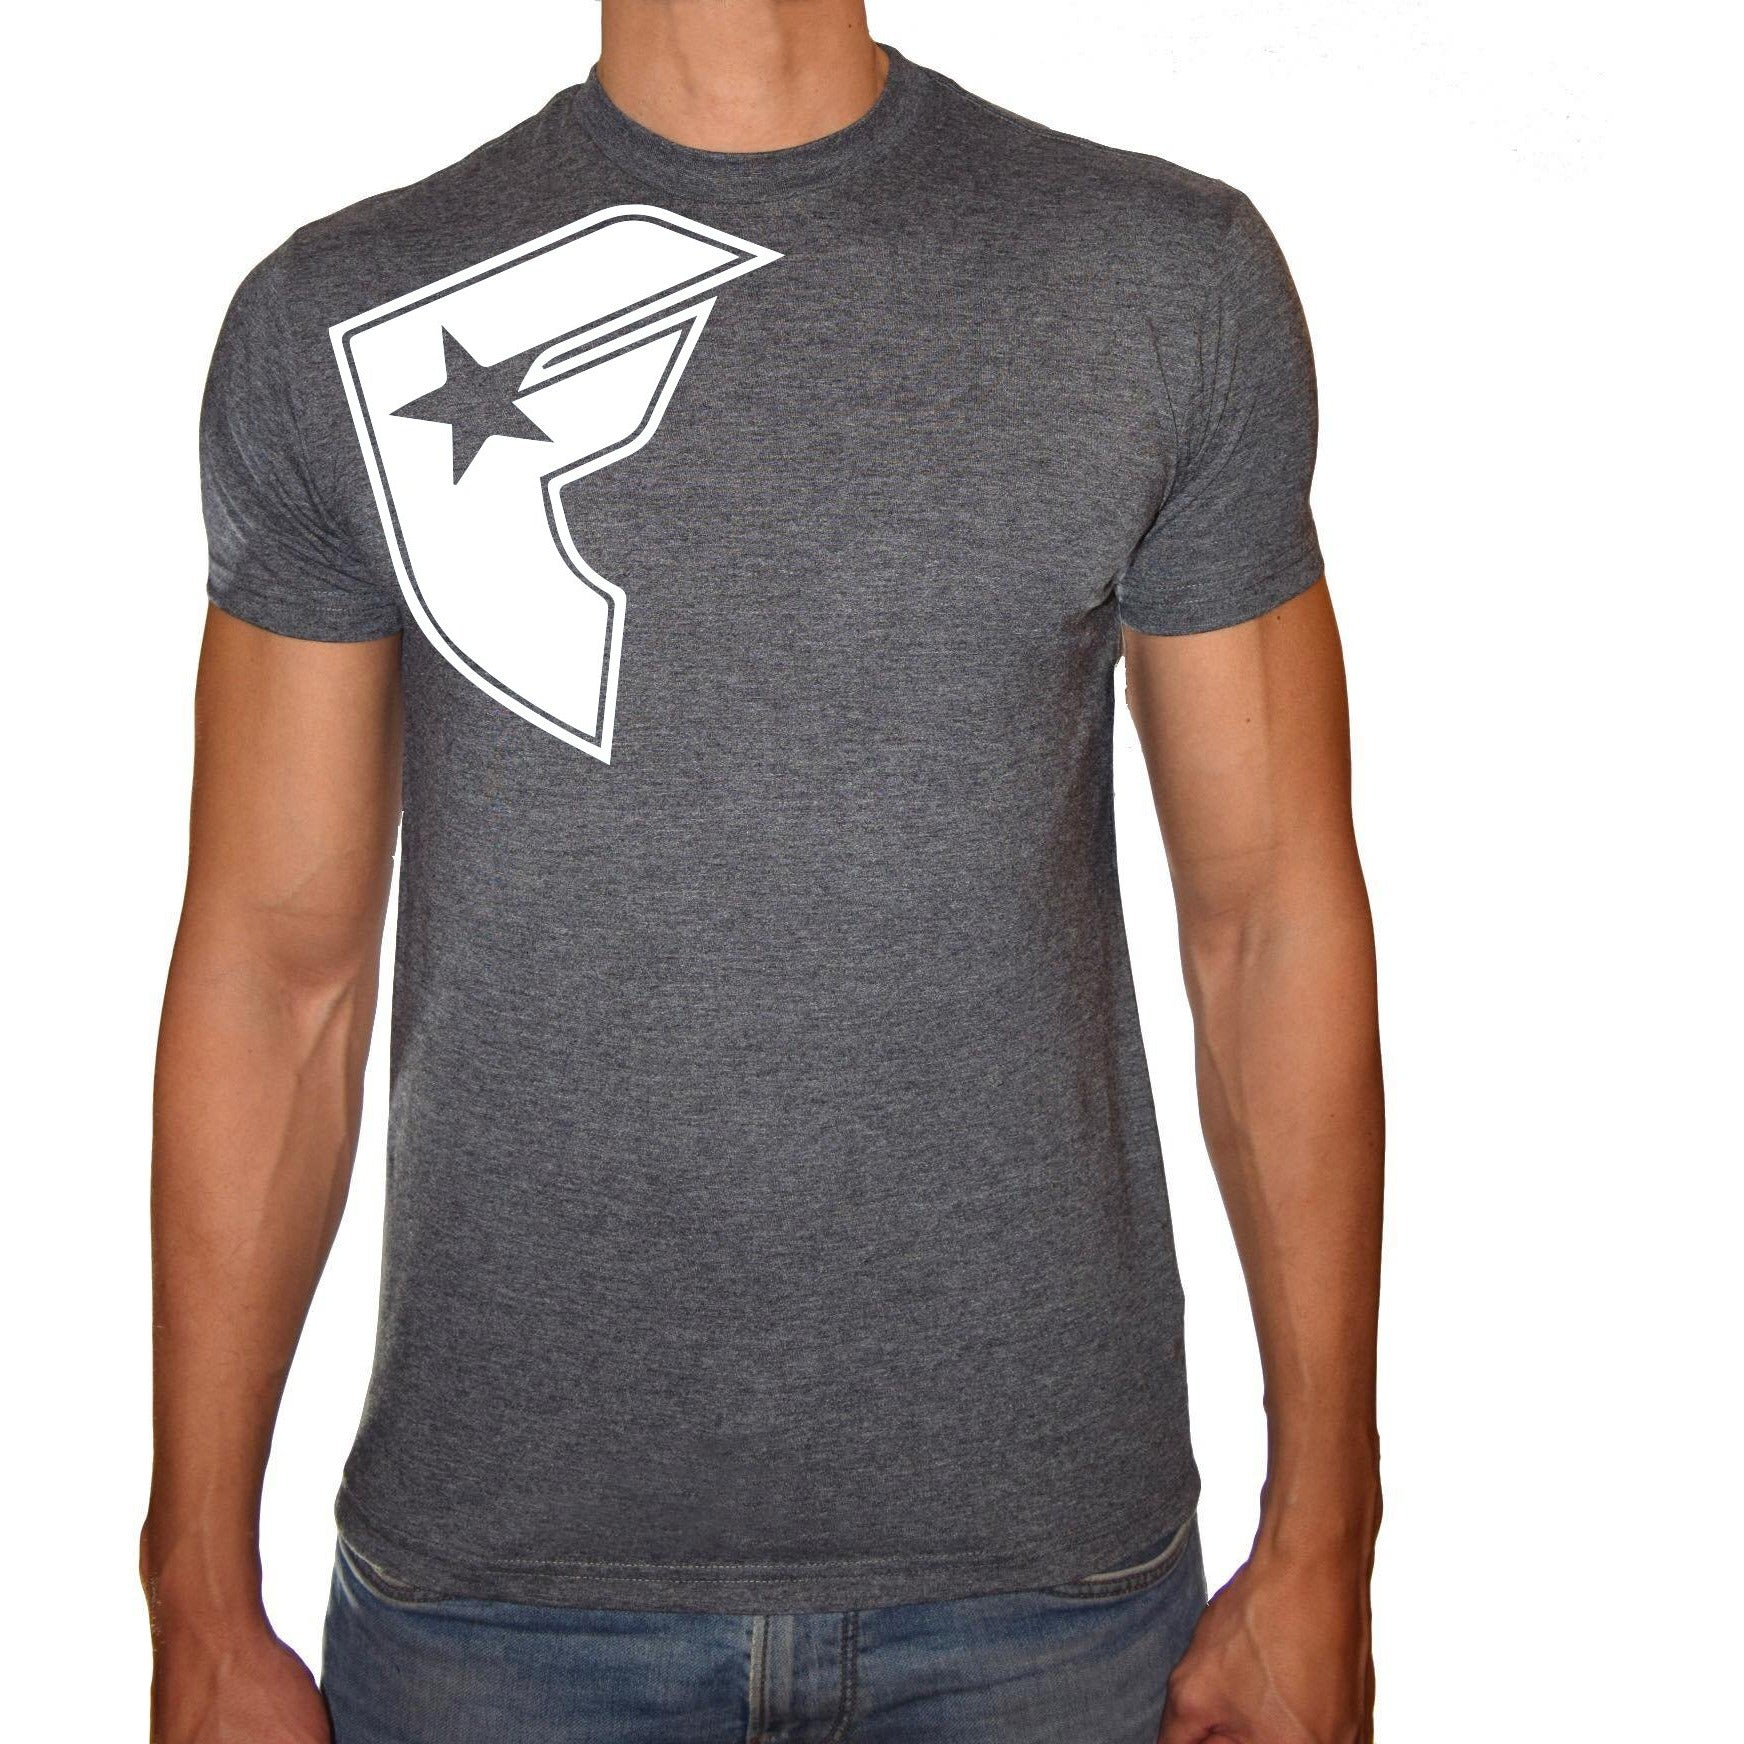 Phoenix CHARCOAL Round Neck Printed T-Shirt Men(F star)